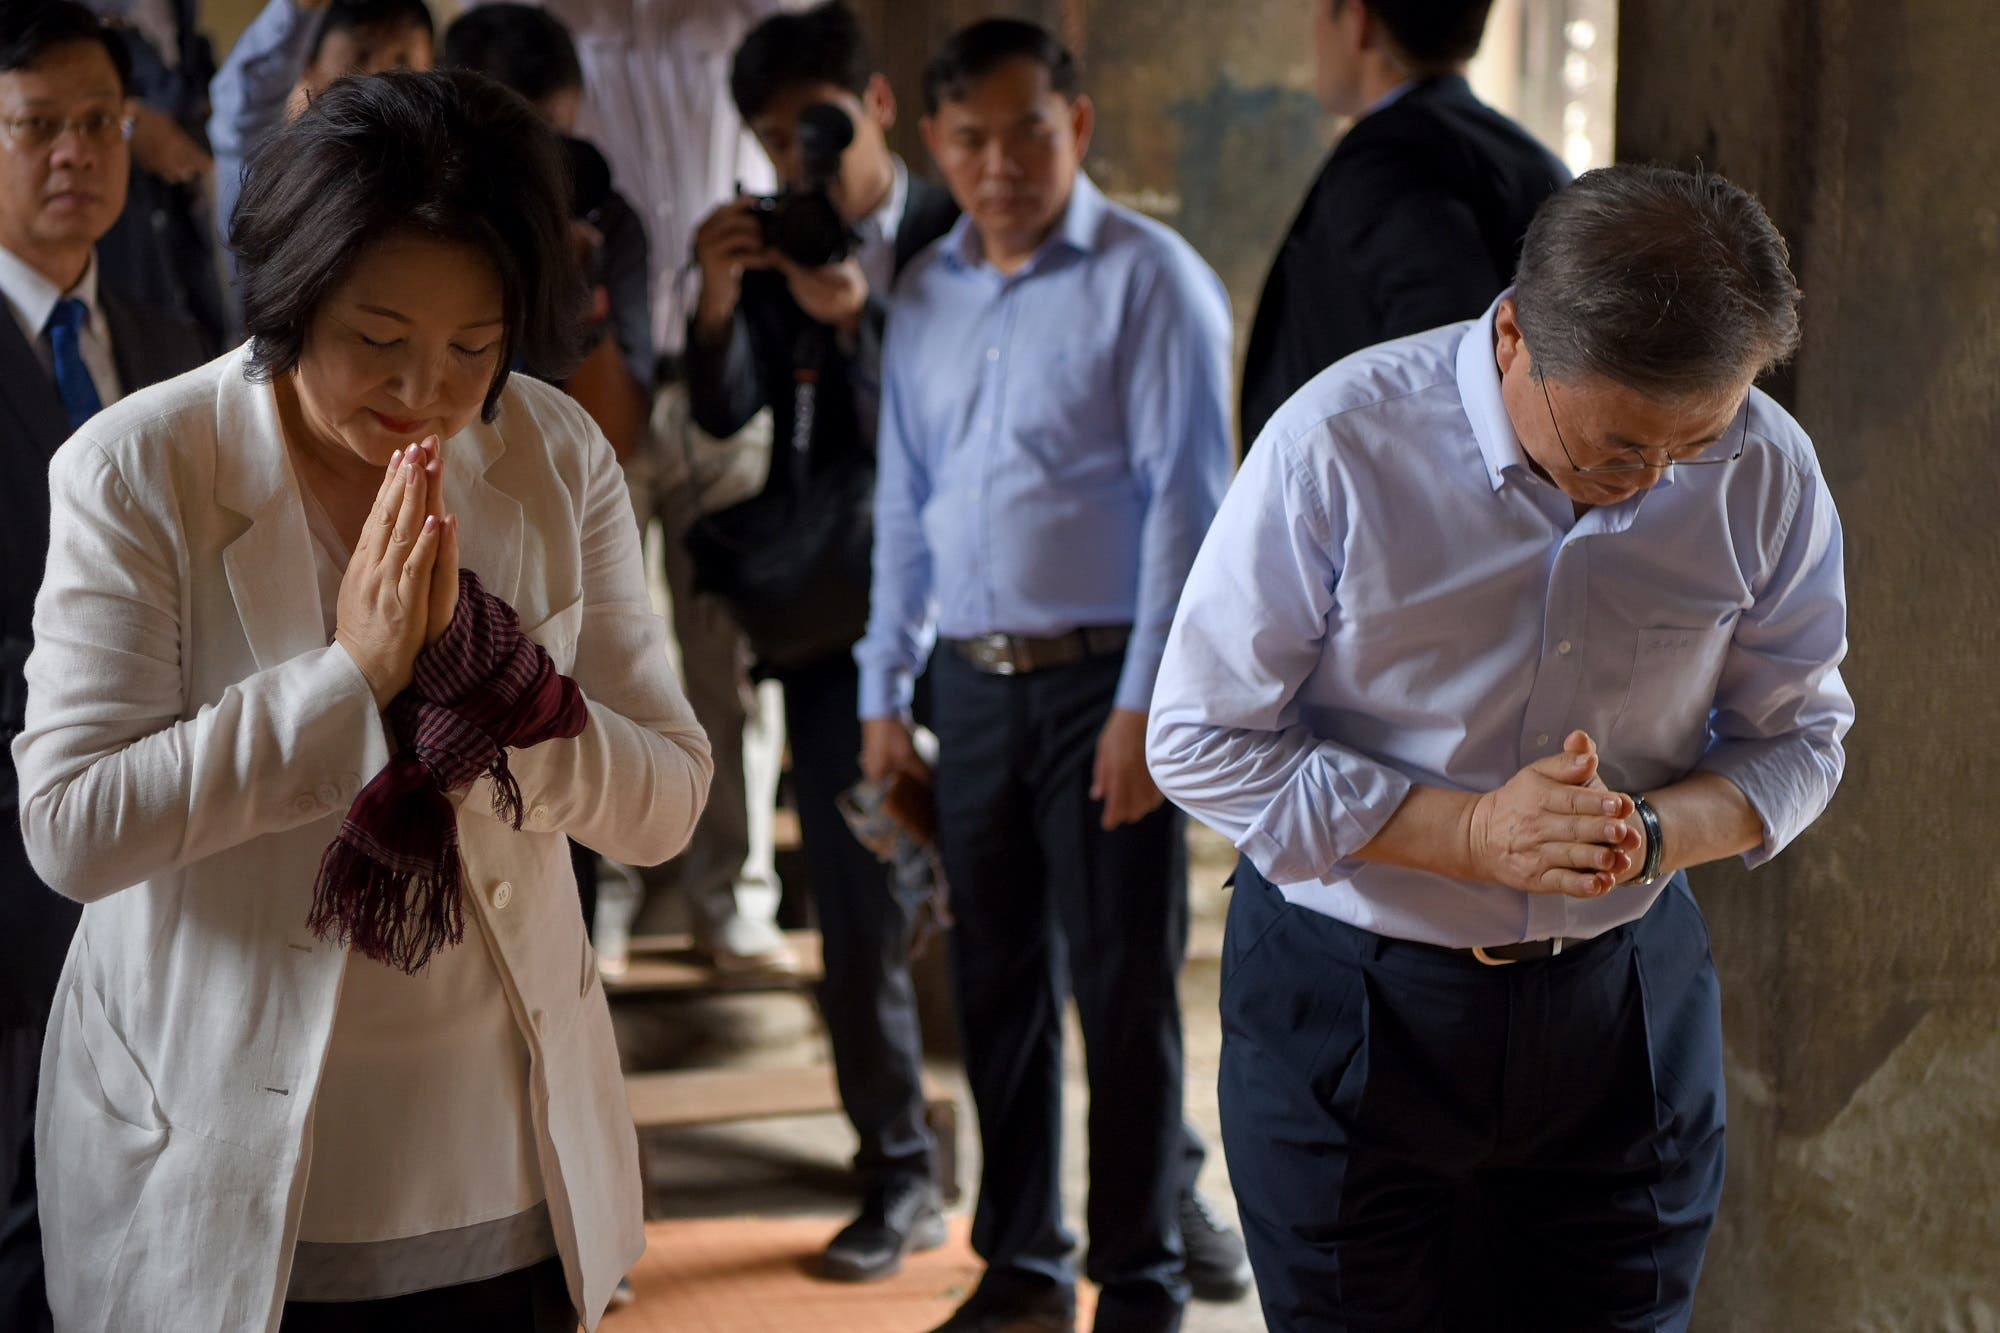 South Korea's President Moon Jae-in and his wife Kim Jung-sook pray during their visit to the Angkor Wat temple in Siem Reap on March 16, 2019. (AFP)